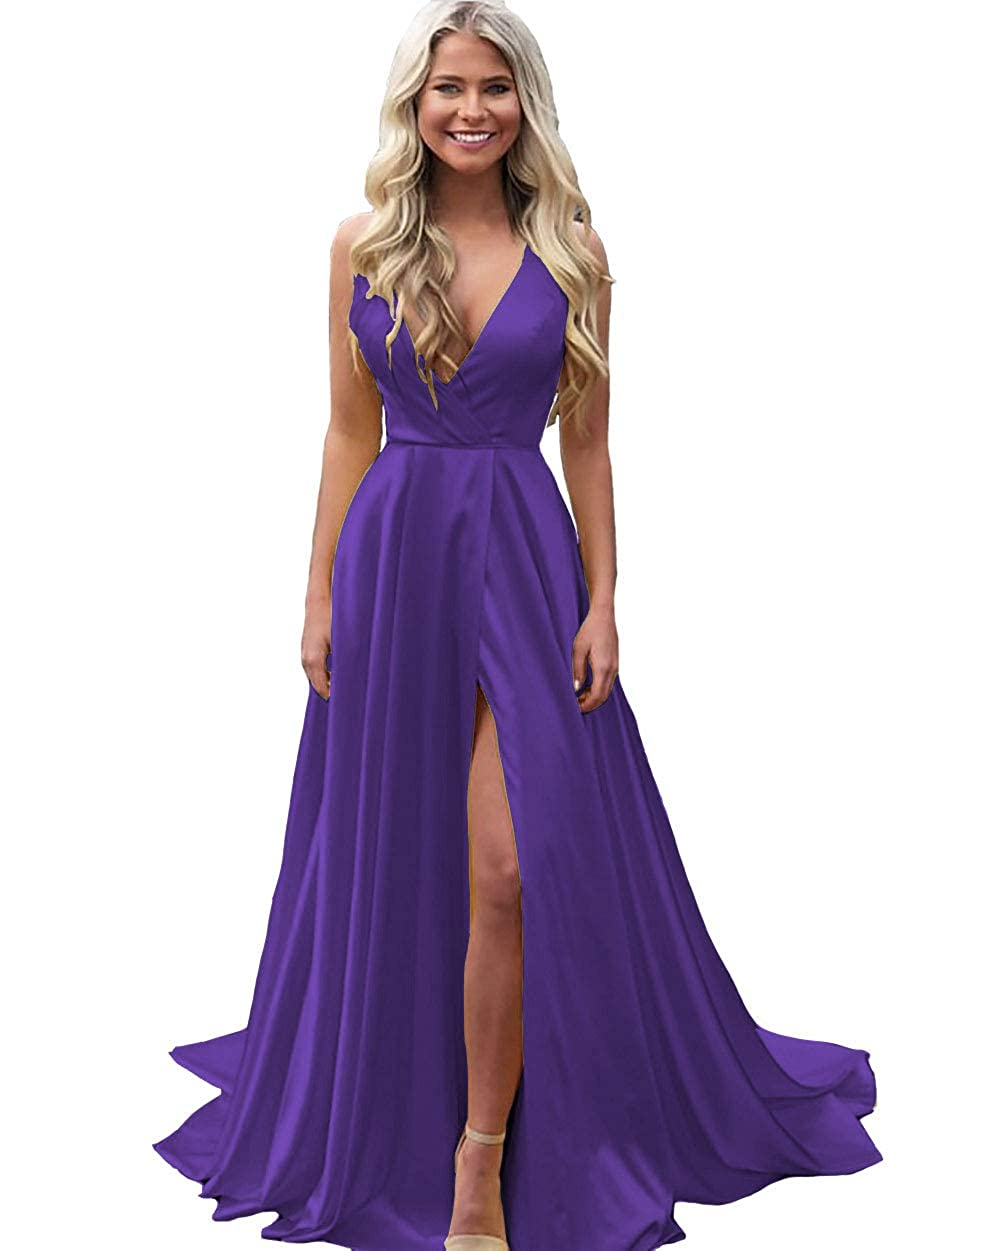 Purple IVYPRECIOUS Women's V Neck Sexy Prom Dresses A Line Side Split Long Formal Evening Gowns